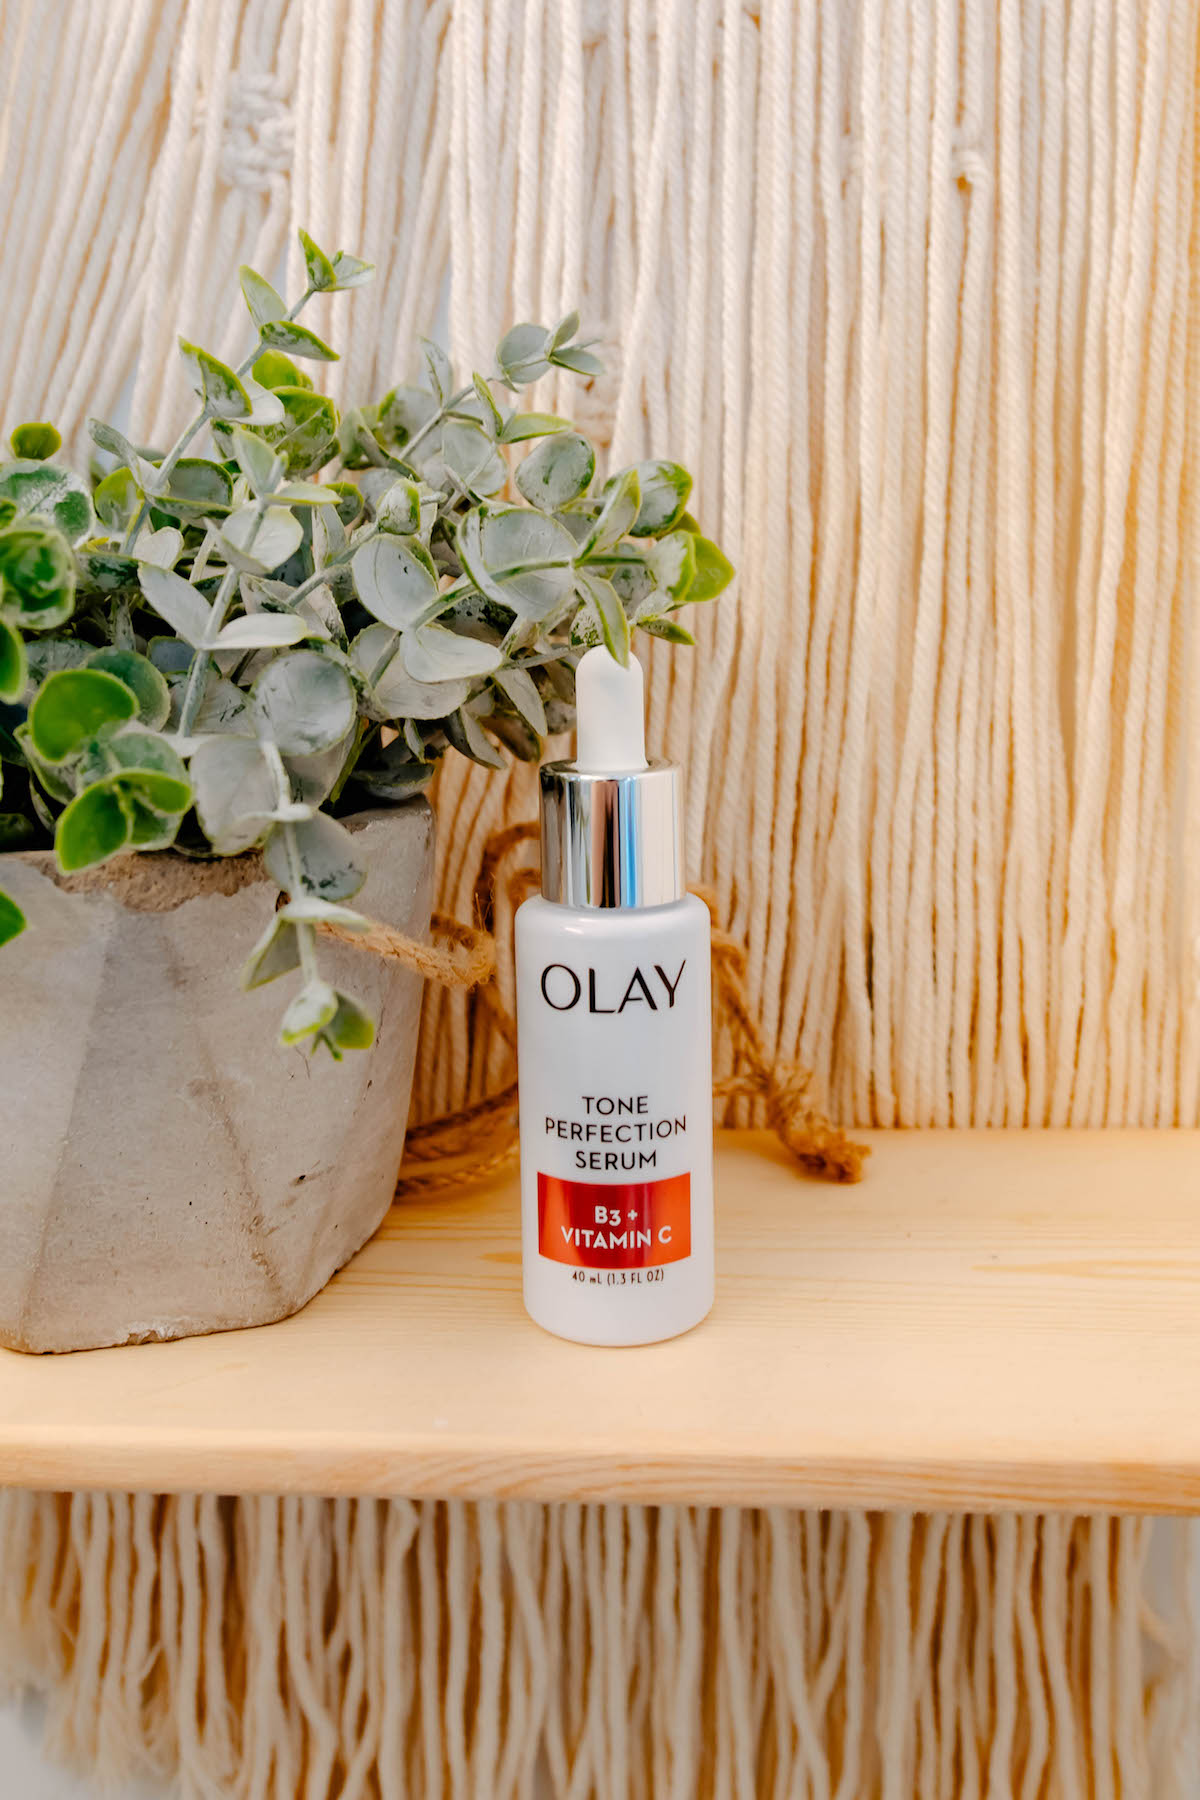 Olay Tone Perfection Serum Review